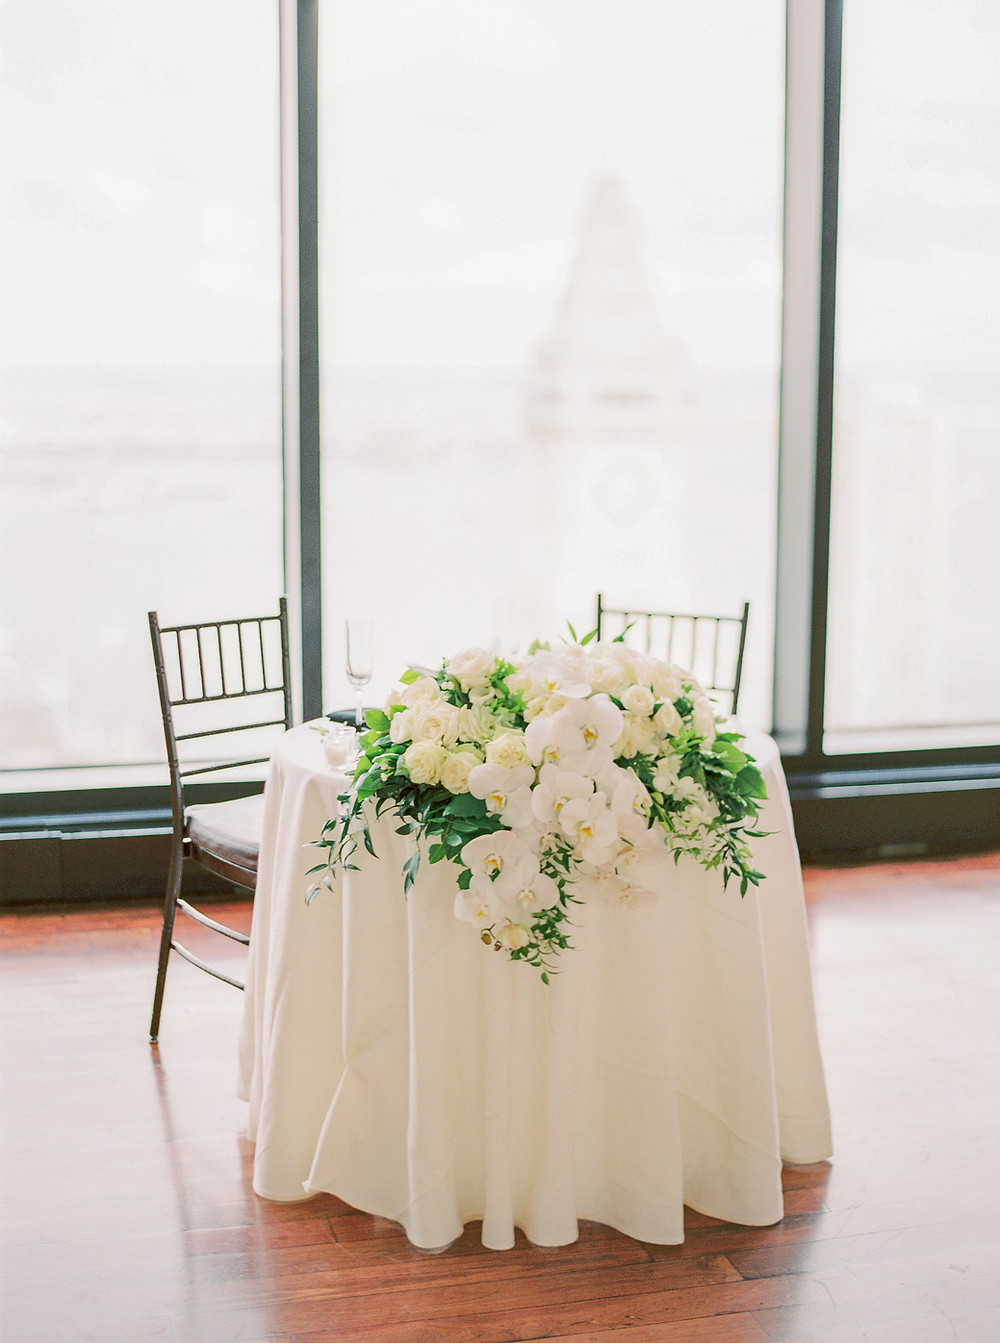 Boston Wedding, Reception Details, Sweetheart Table